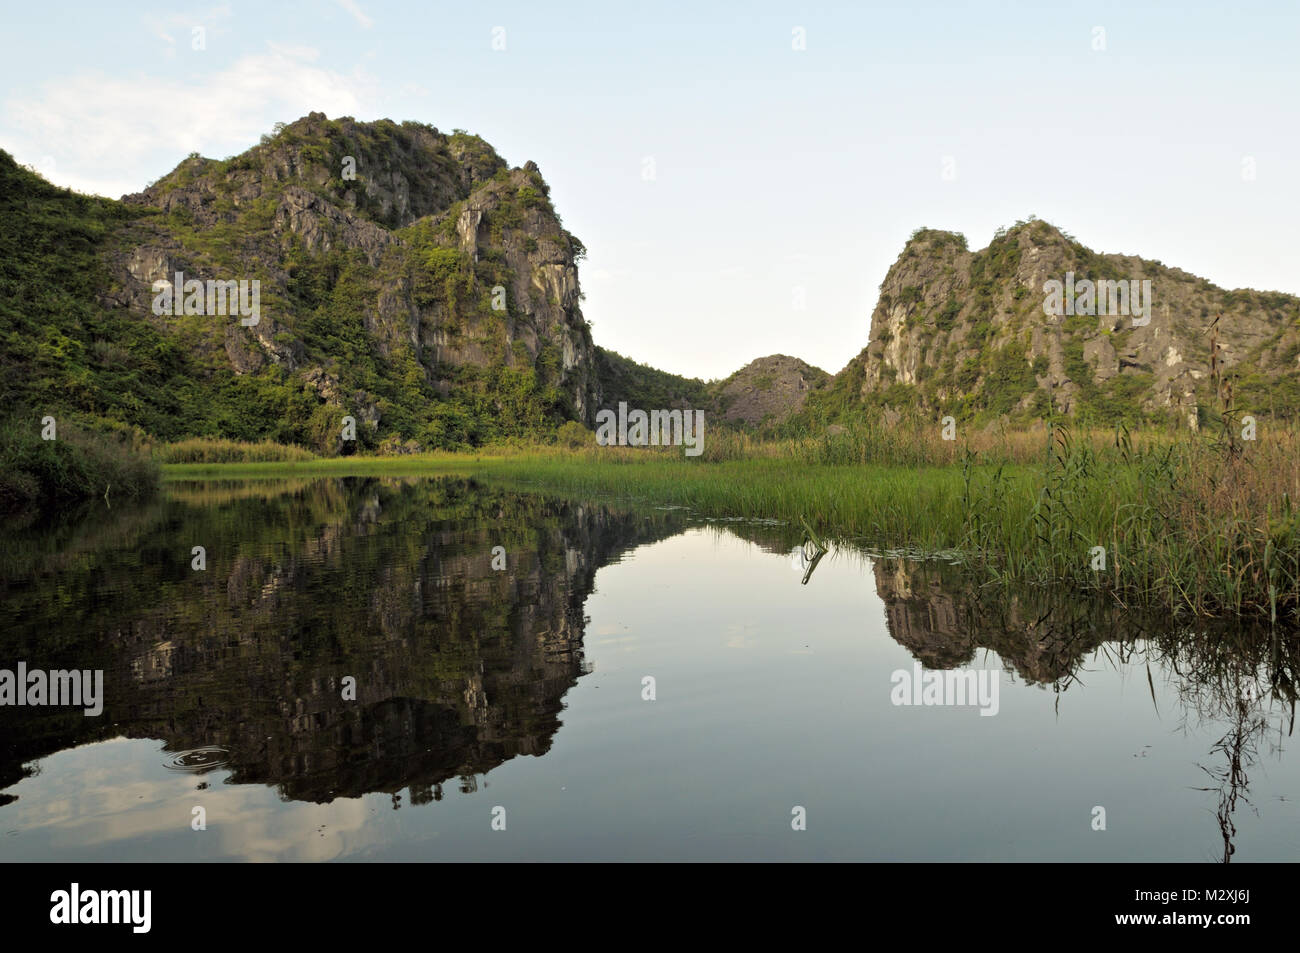 Mountainous landscape in the Van Long Nature Reserve, Ninh Binh Province, north Vietnam Stock Photo